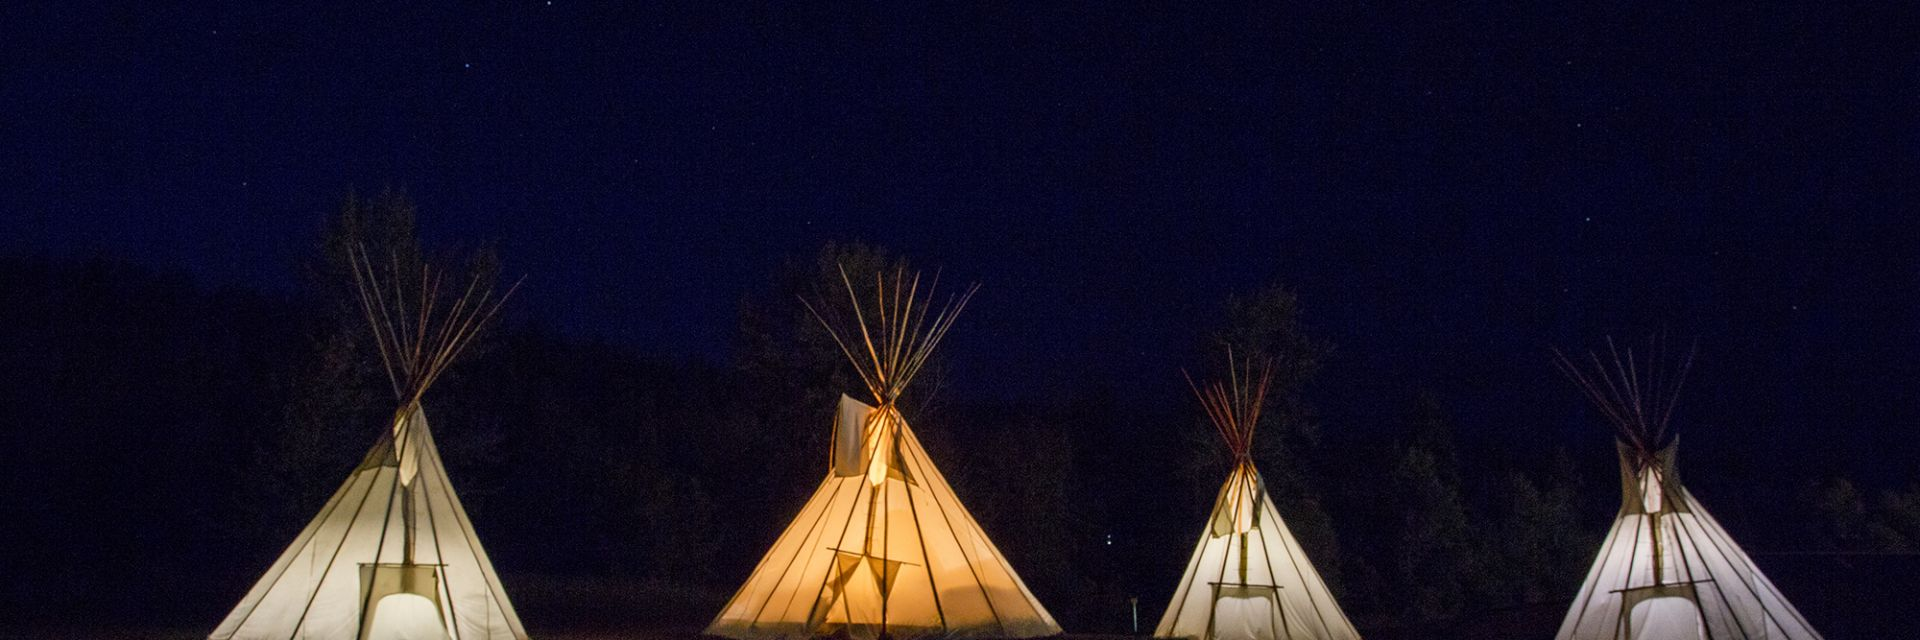 A nighttime view of four teepees